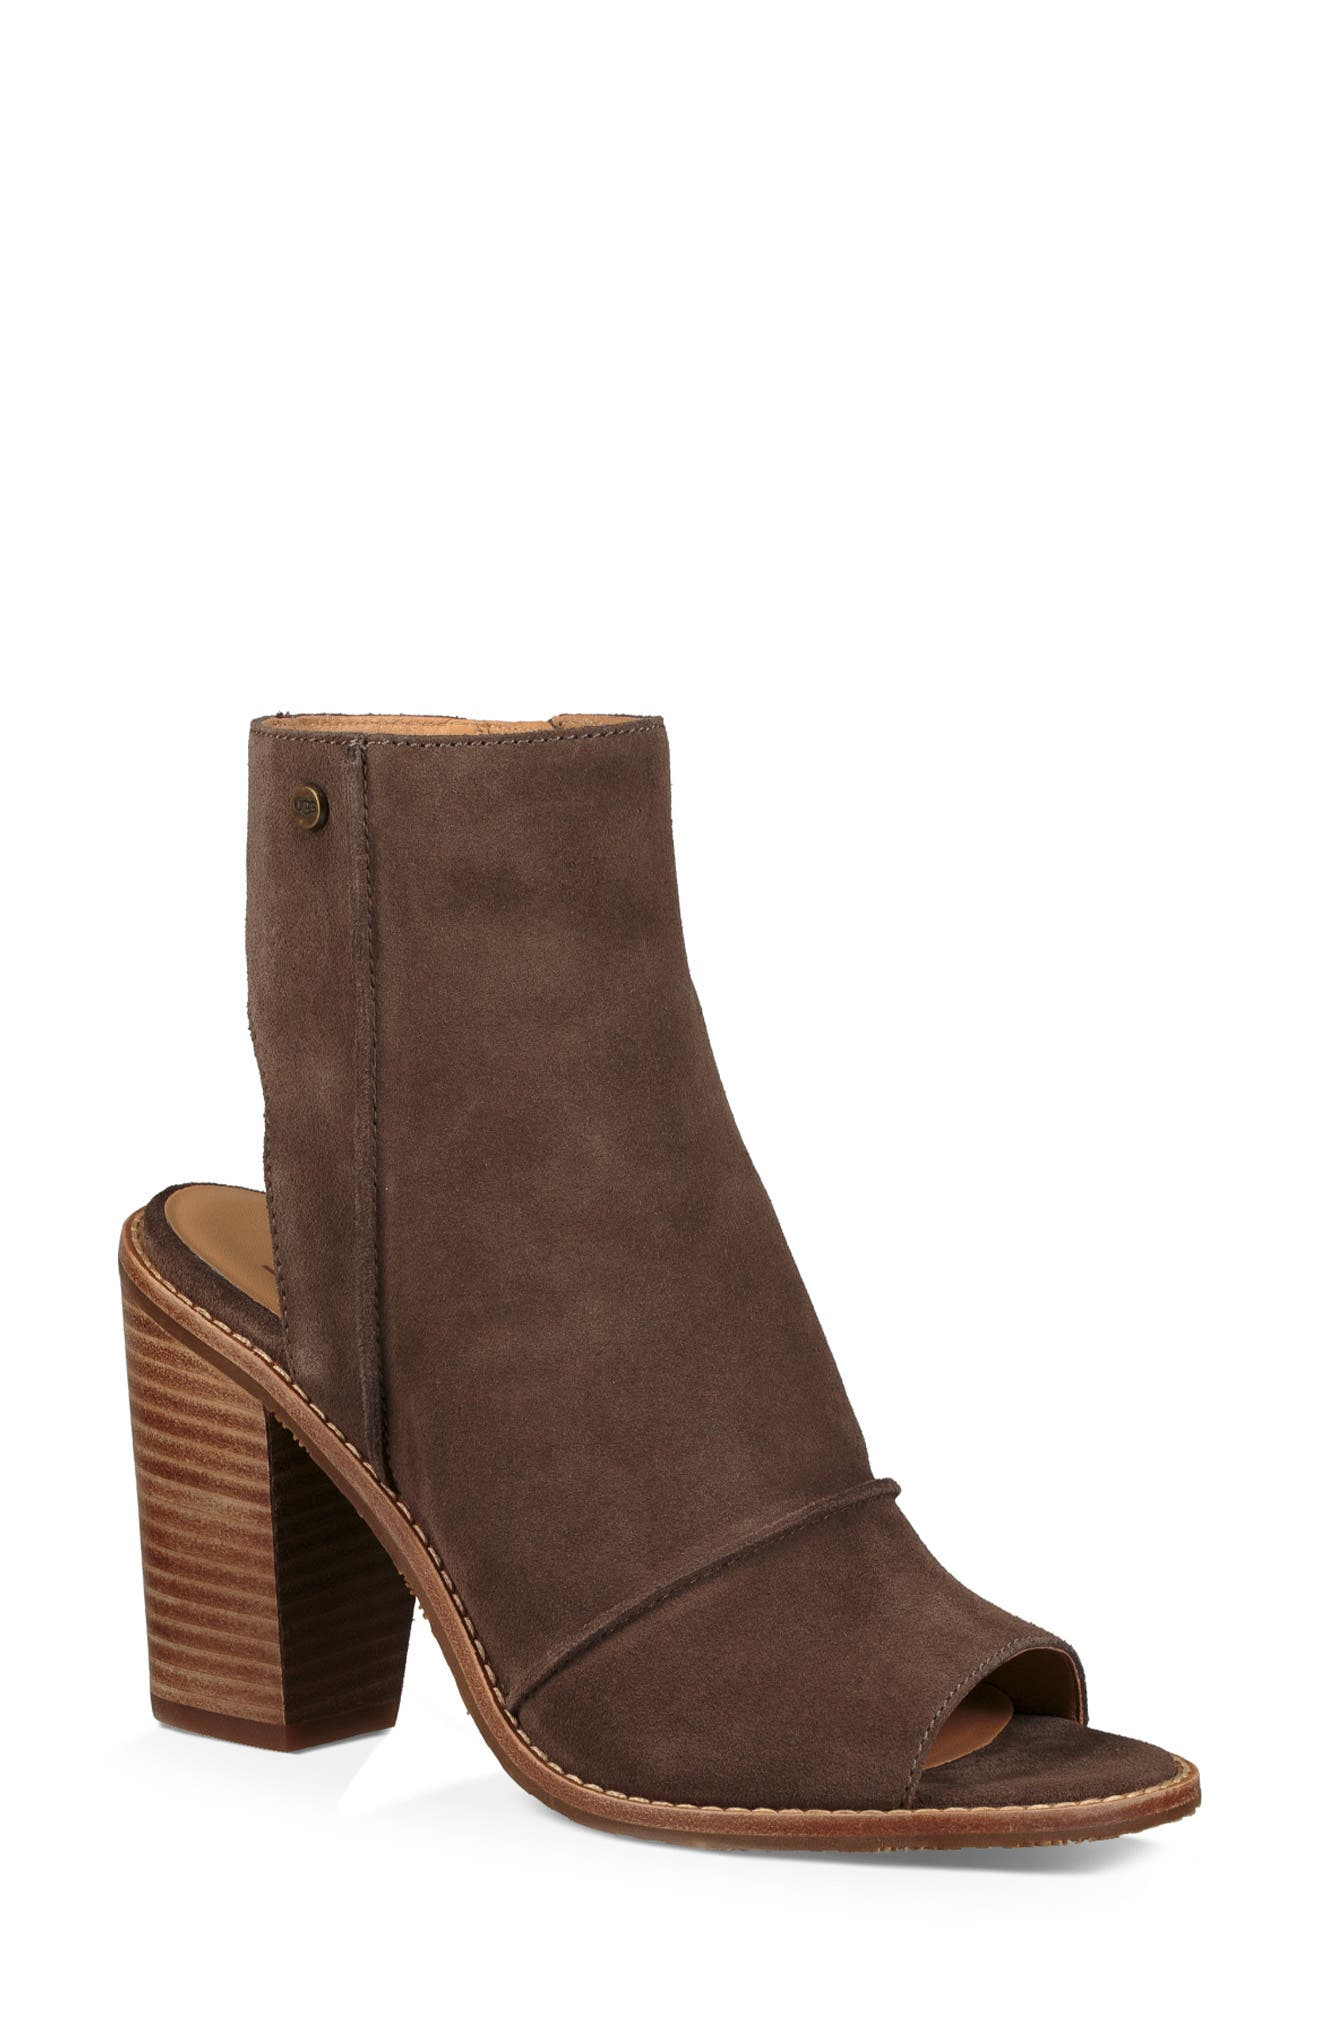 Valencia Peep Toe Bootie,                             Main thumbnail 1, color,                             MYSTERIOUS LEATHER